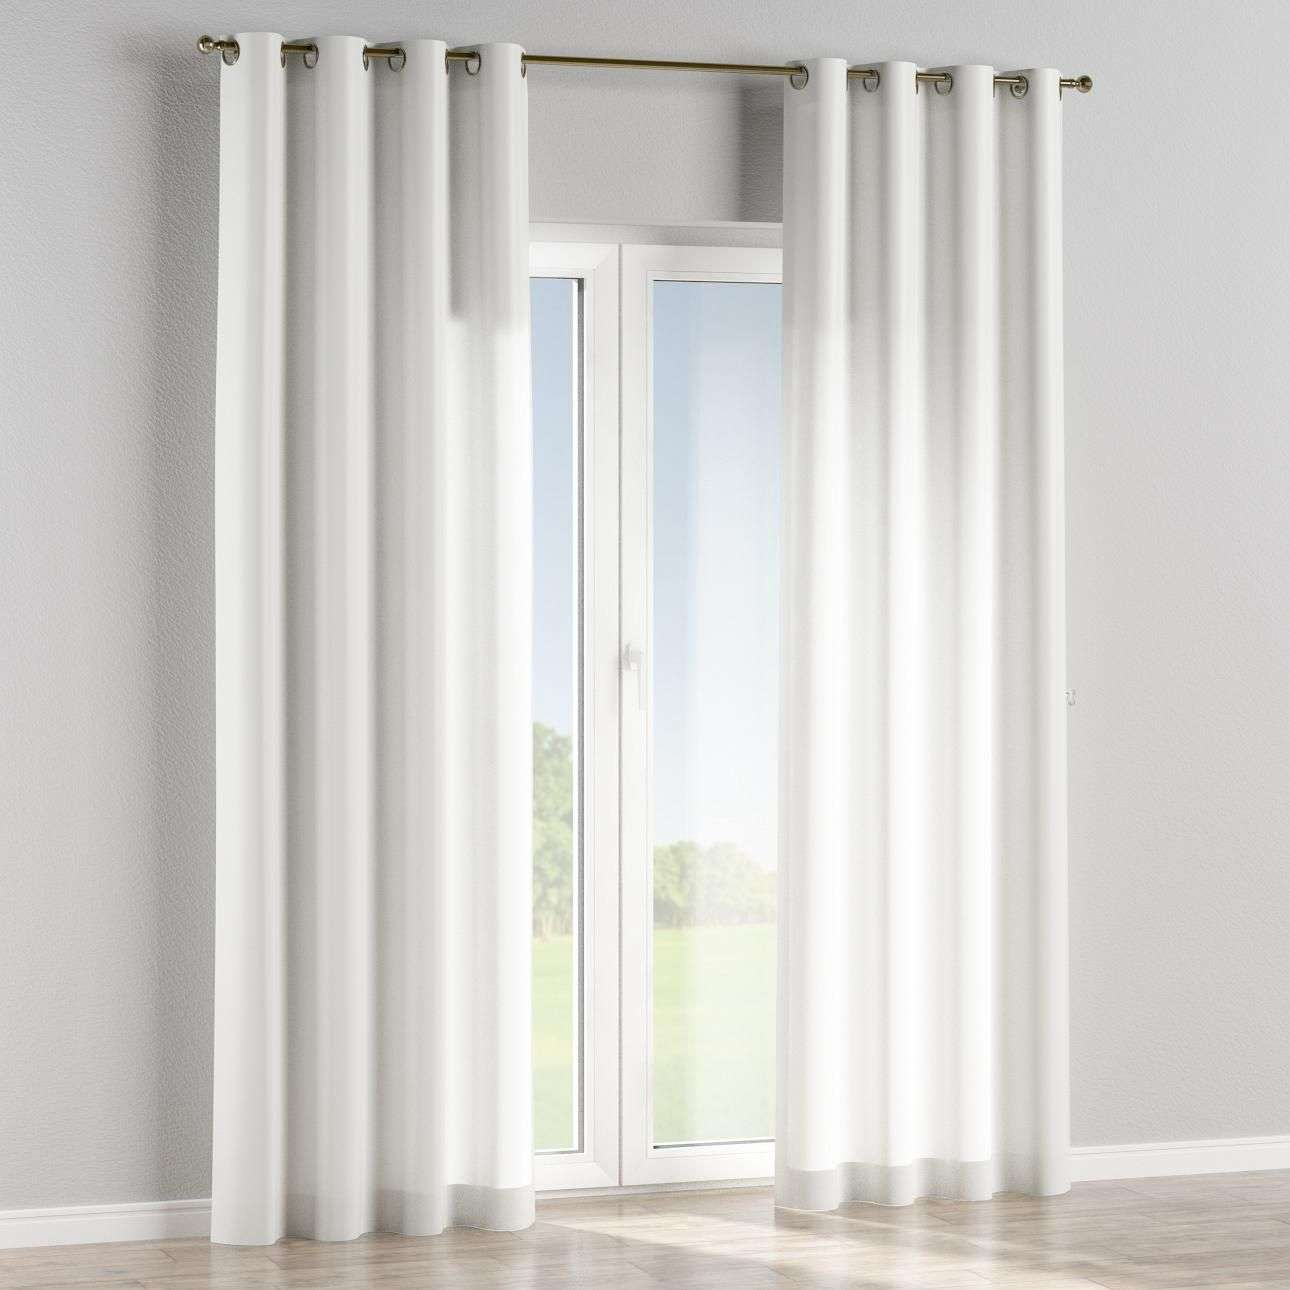 Eyelet curtains in collection Ashley, fabric: 137-47